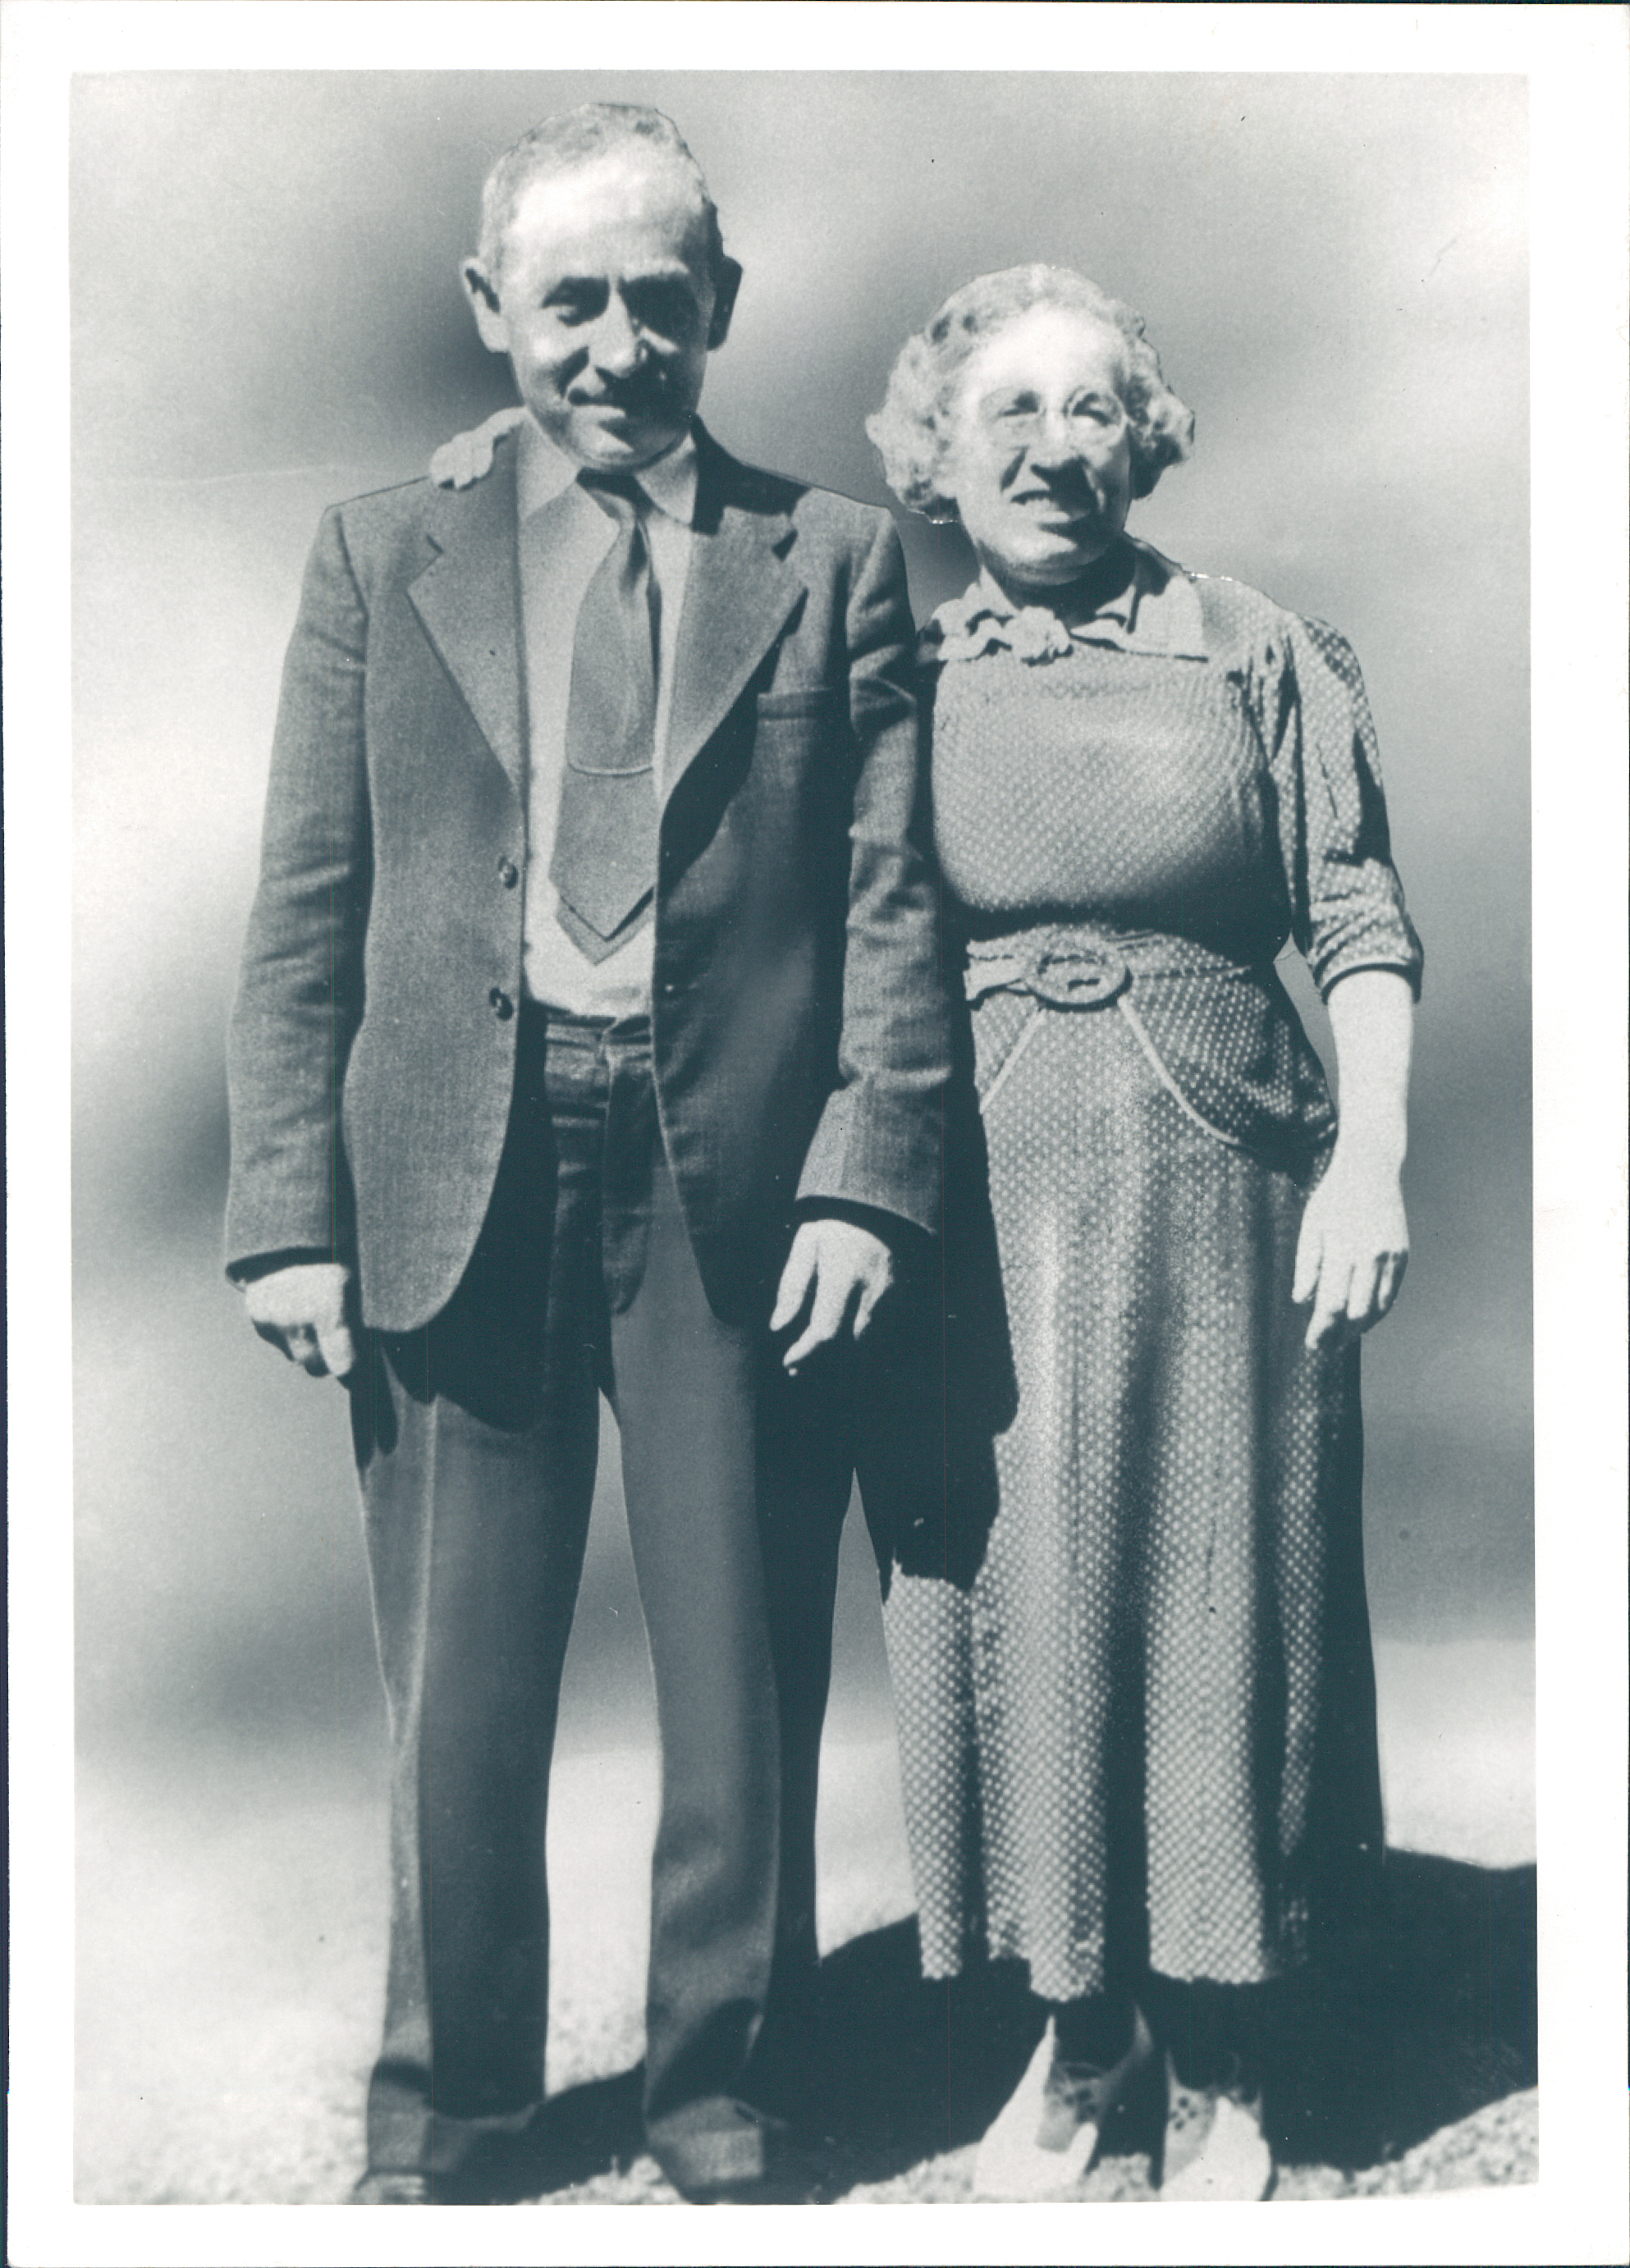 My great-grandparents, Harry Kubrin and Tillie Koppelman